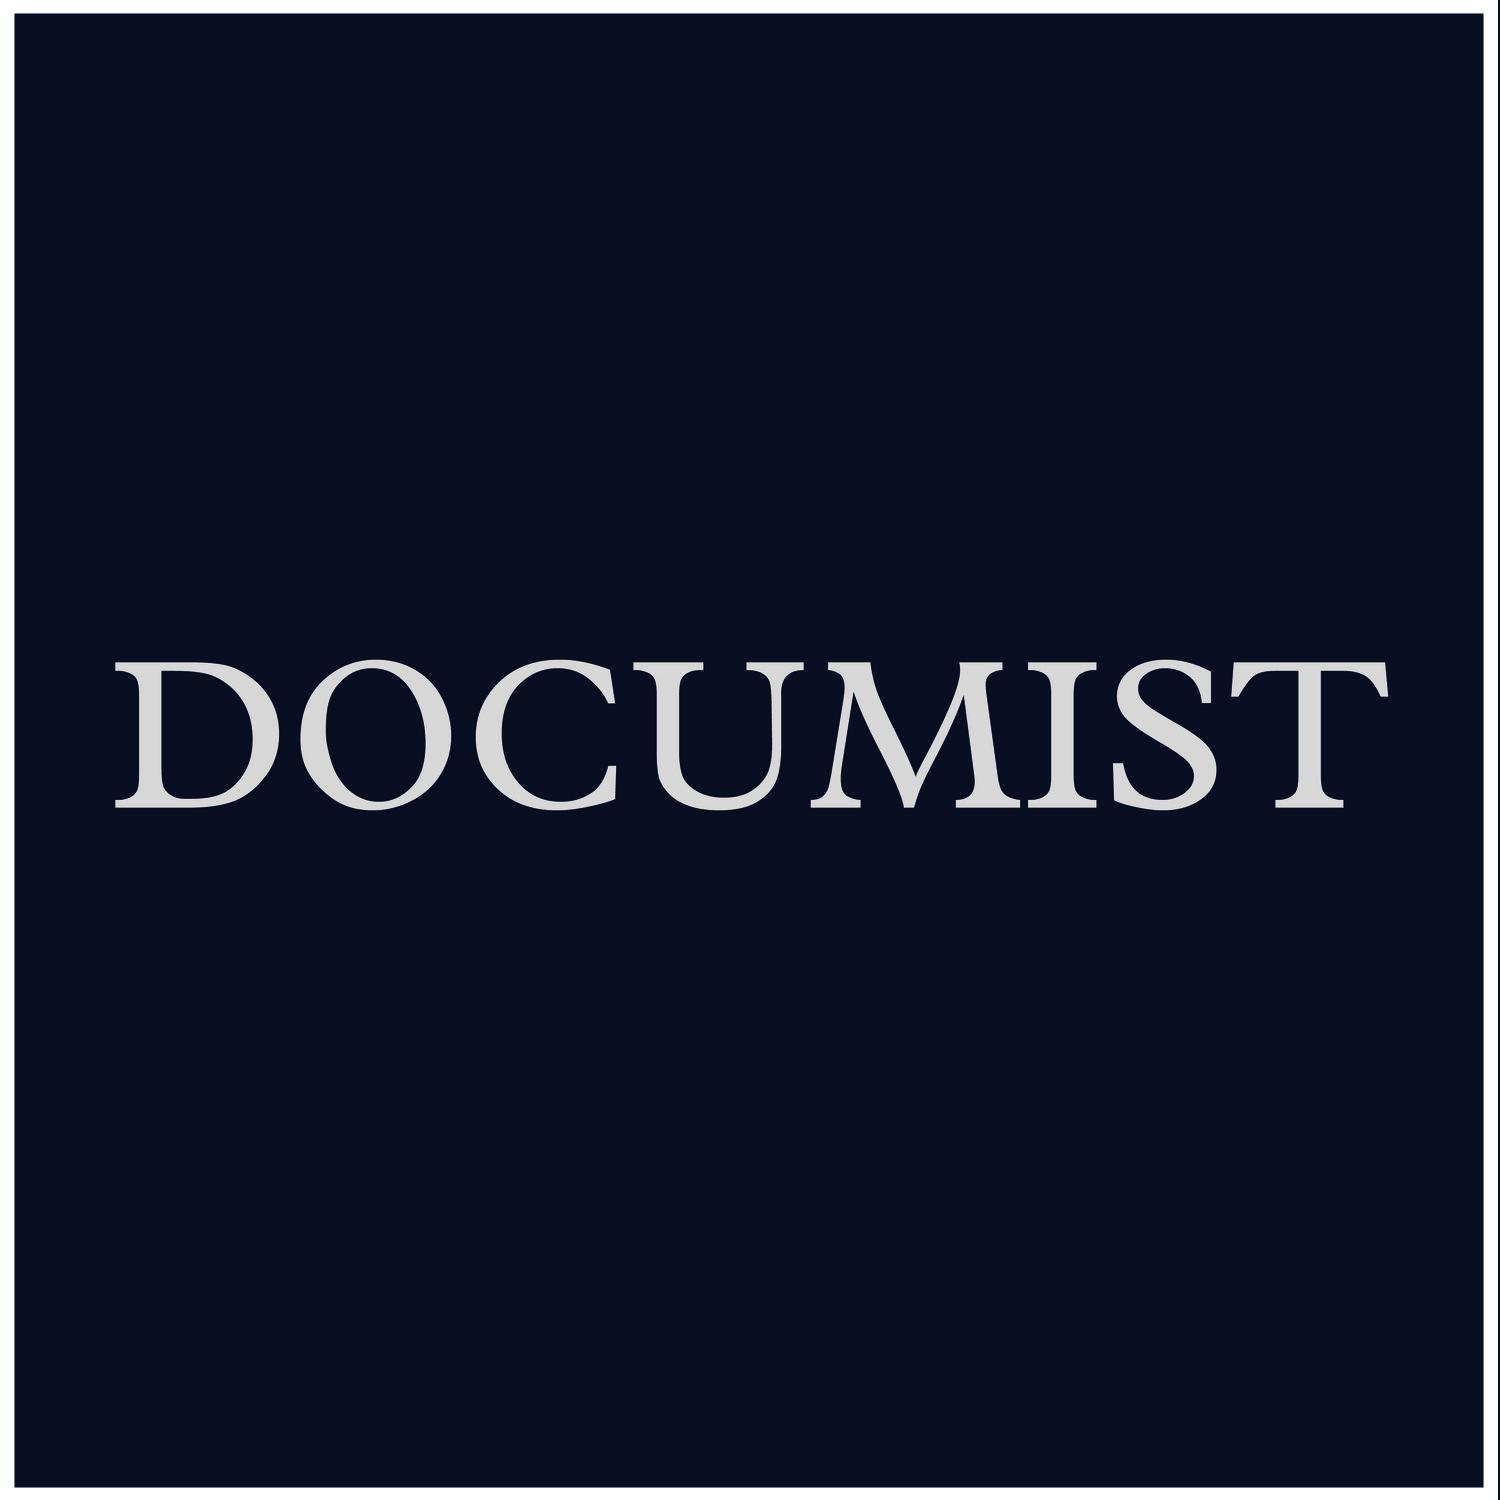 Documist Film Co.